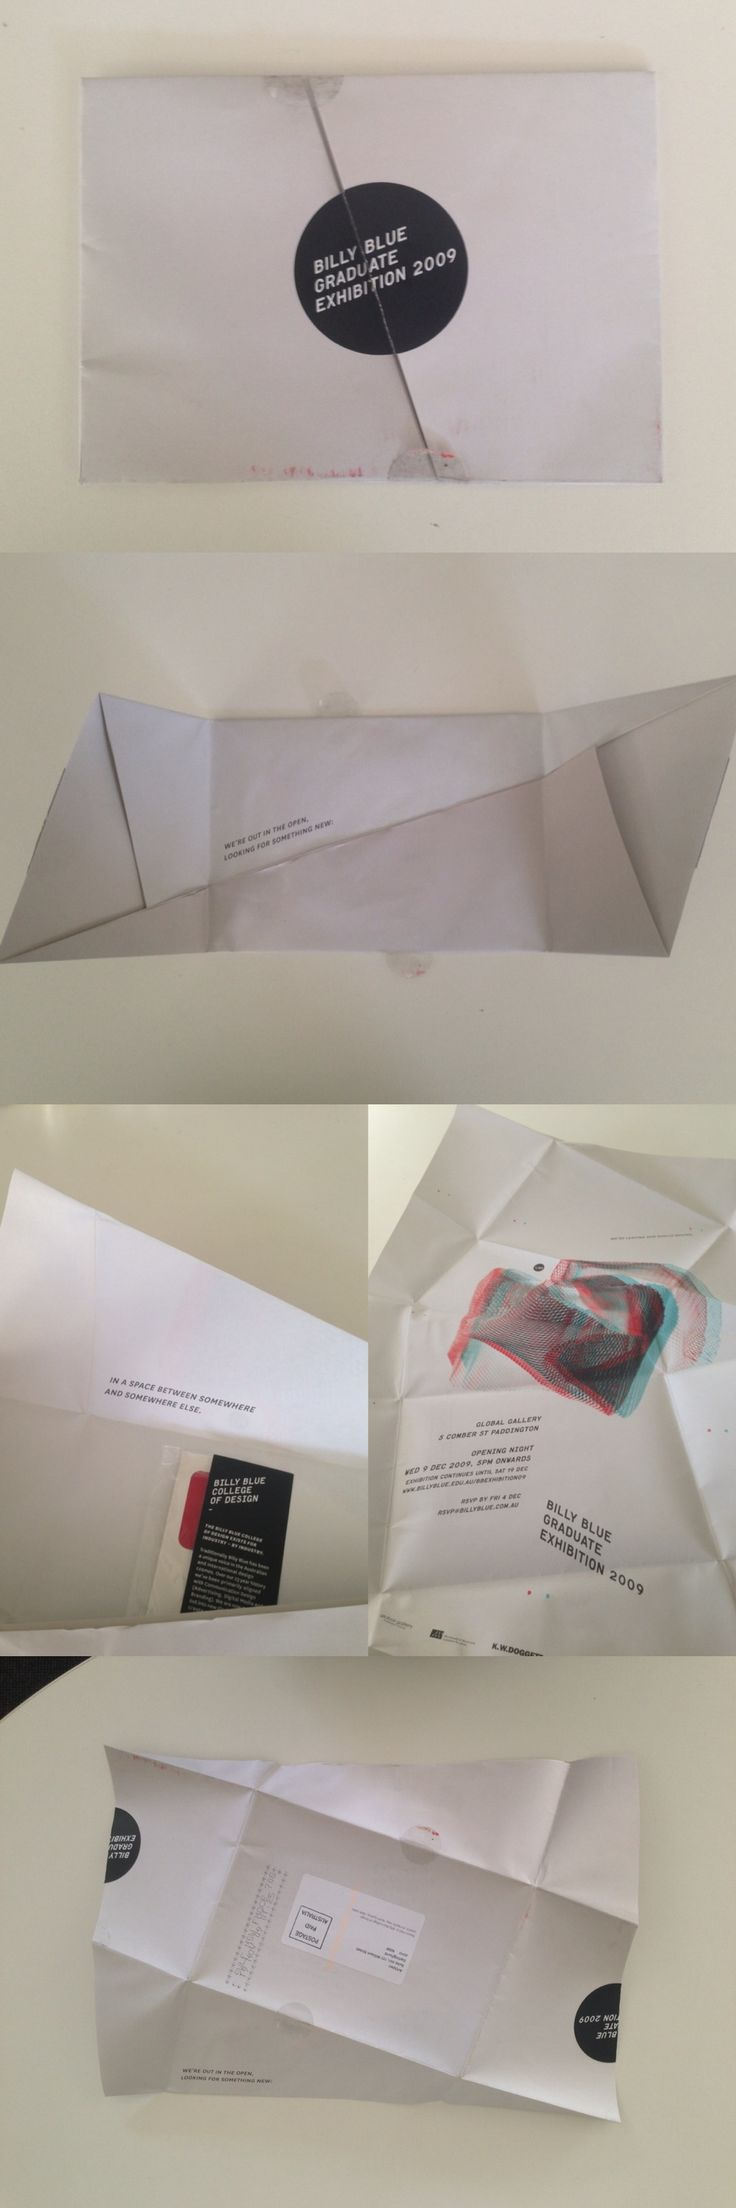 Self mailer poster invitation, fold out poster with stereoscopic illustration – Billy Blue graduates exhibition 2009